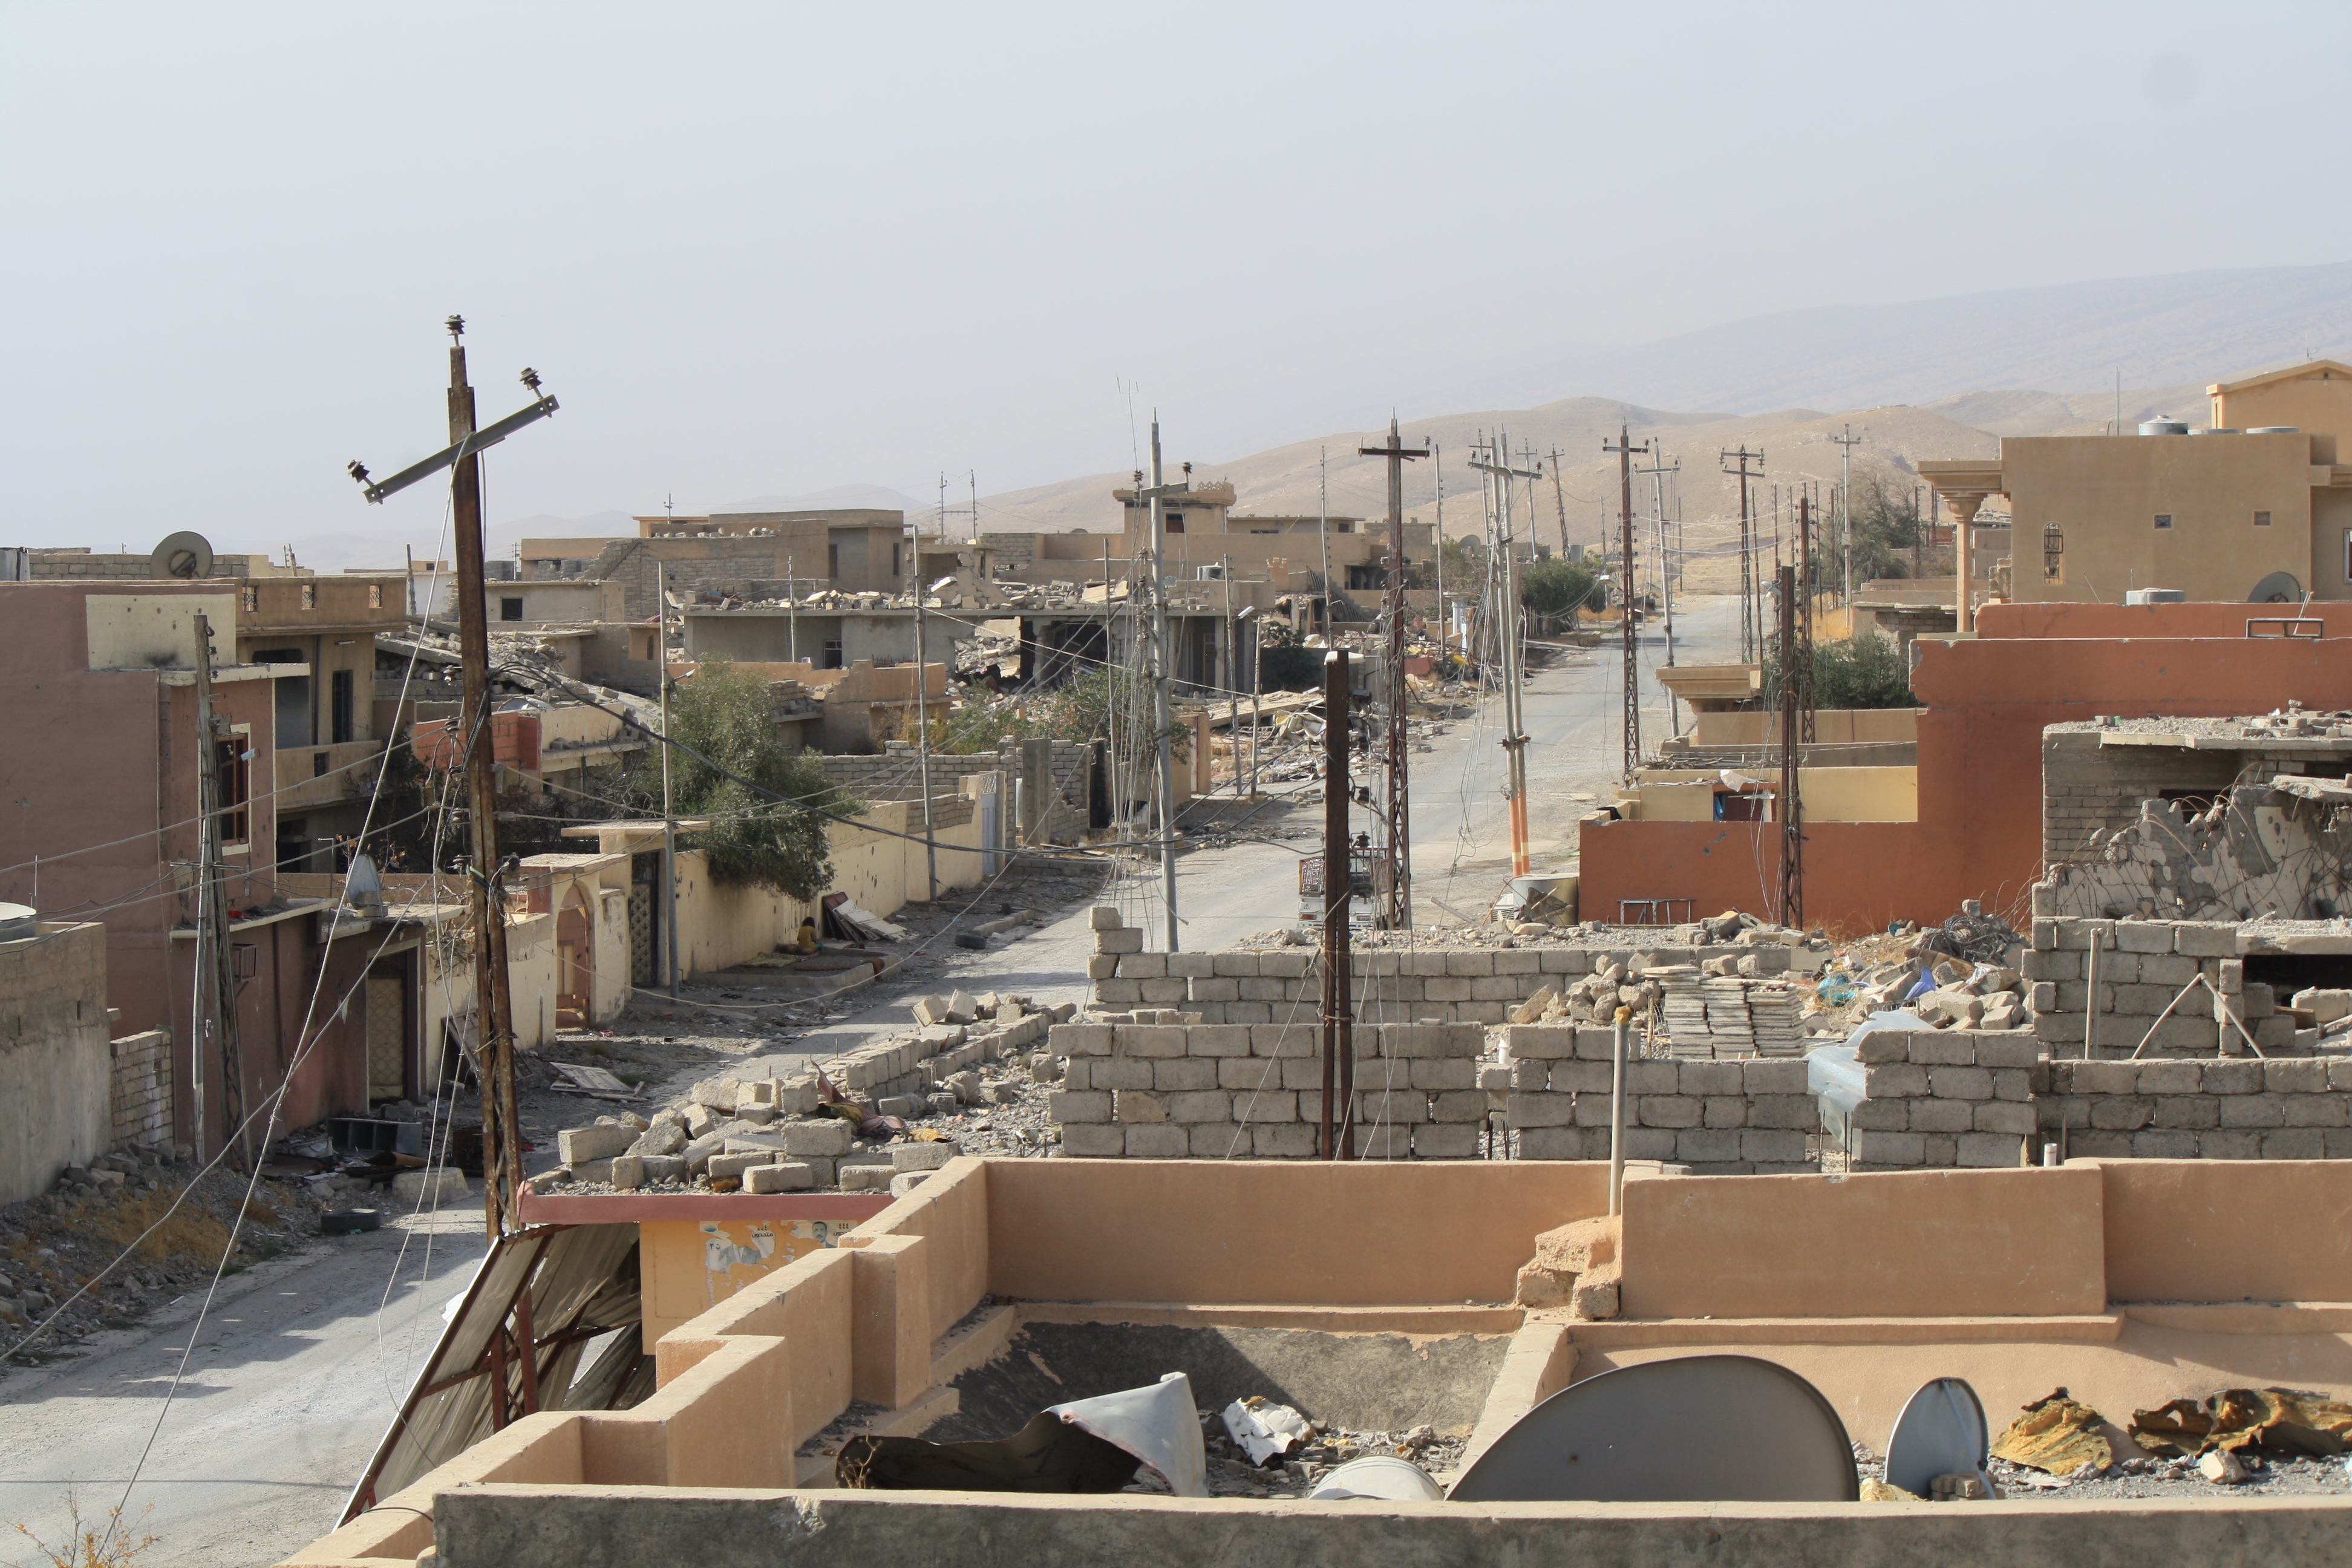 Once home to roughly 80,000 people and a traditional homeland for the Yazidi people, Sinjar, Iraq, lies in ruins and thousands are buried in mass graves outside the city. Nov. 14, 2016. (H.Murdock/VOA)